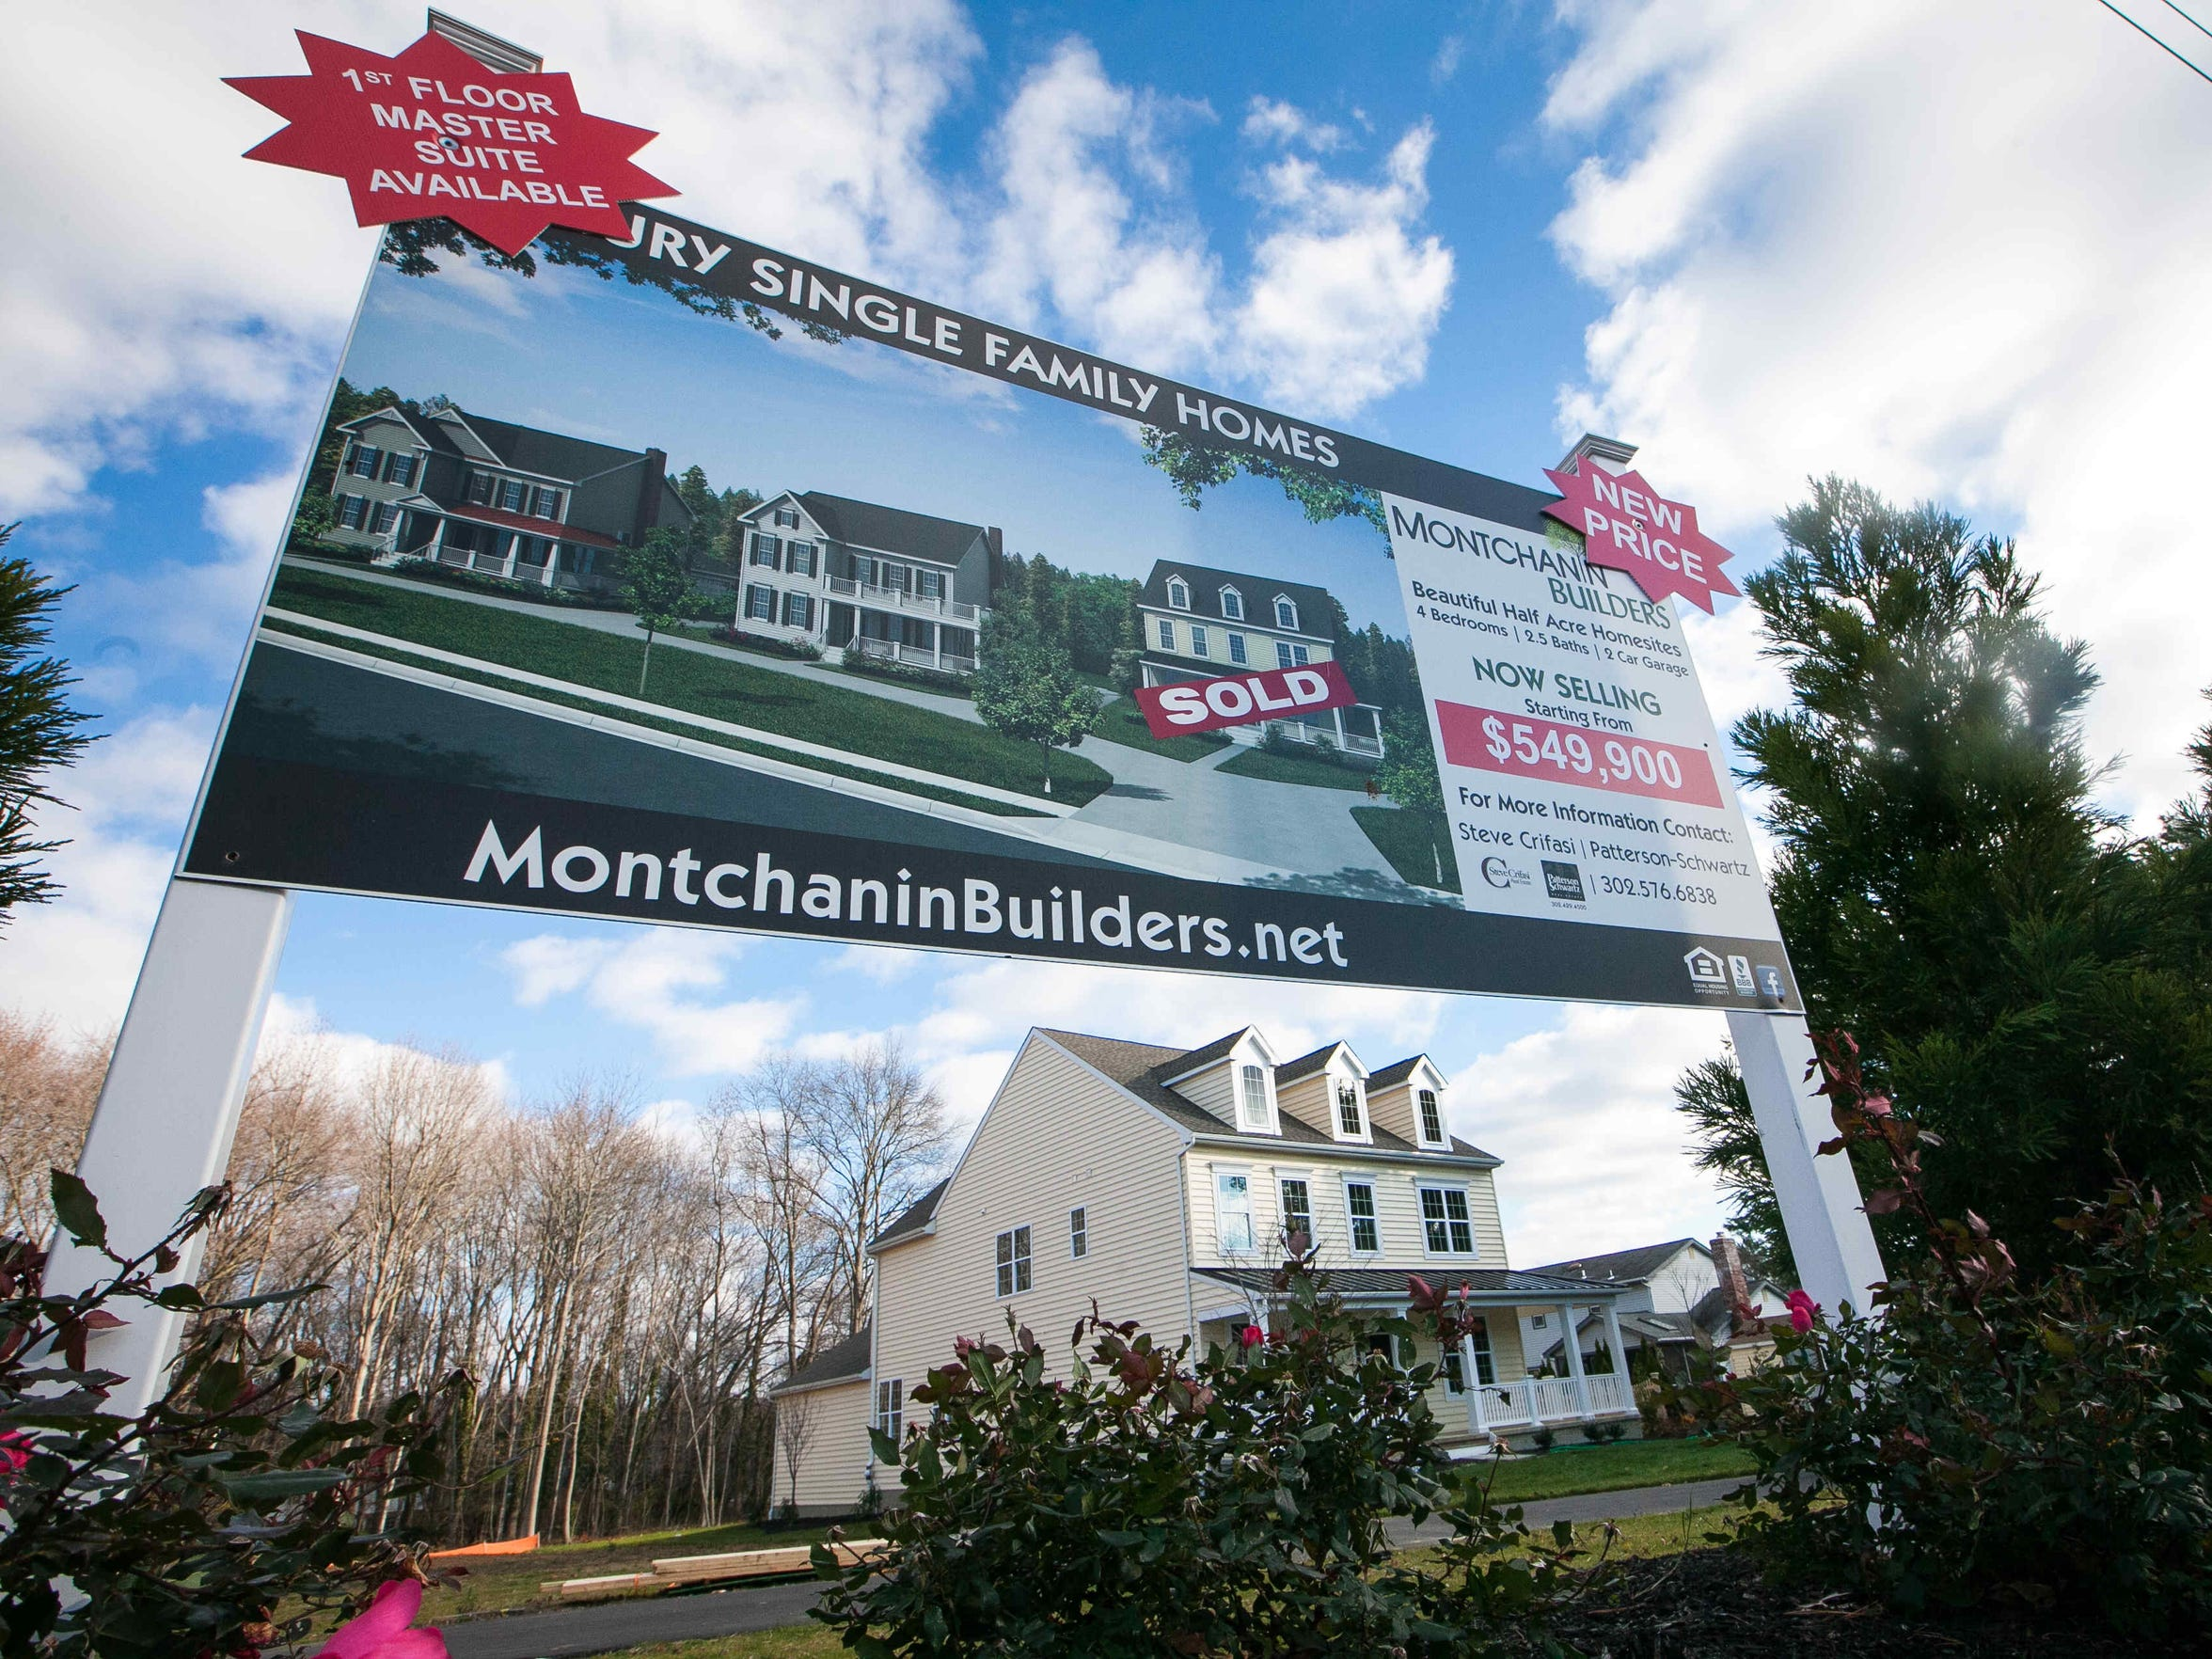 New luxury single family homes are being constructed across the street from the recently closed Brandywine Country Club. Several local golf courses are threatened by development of subdivisions.